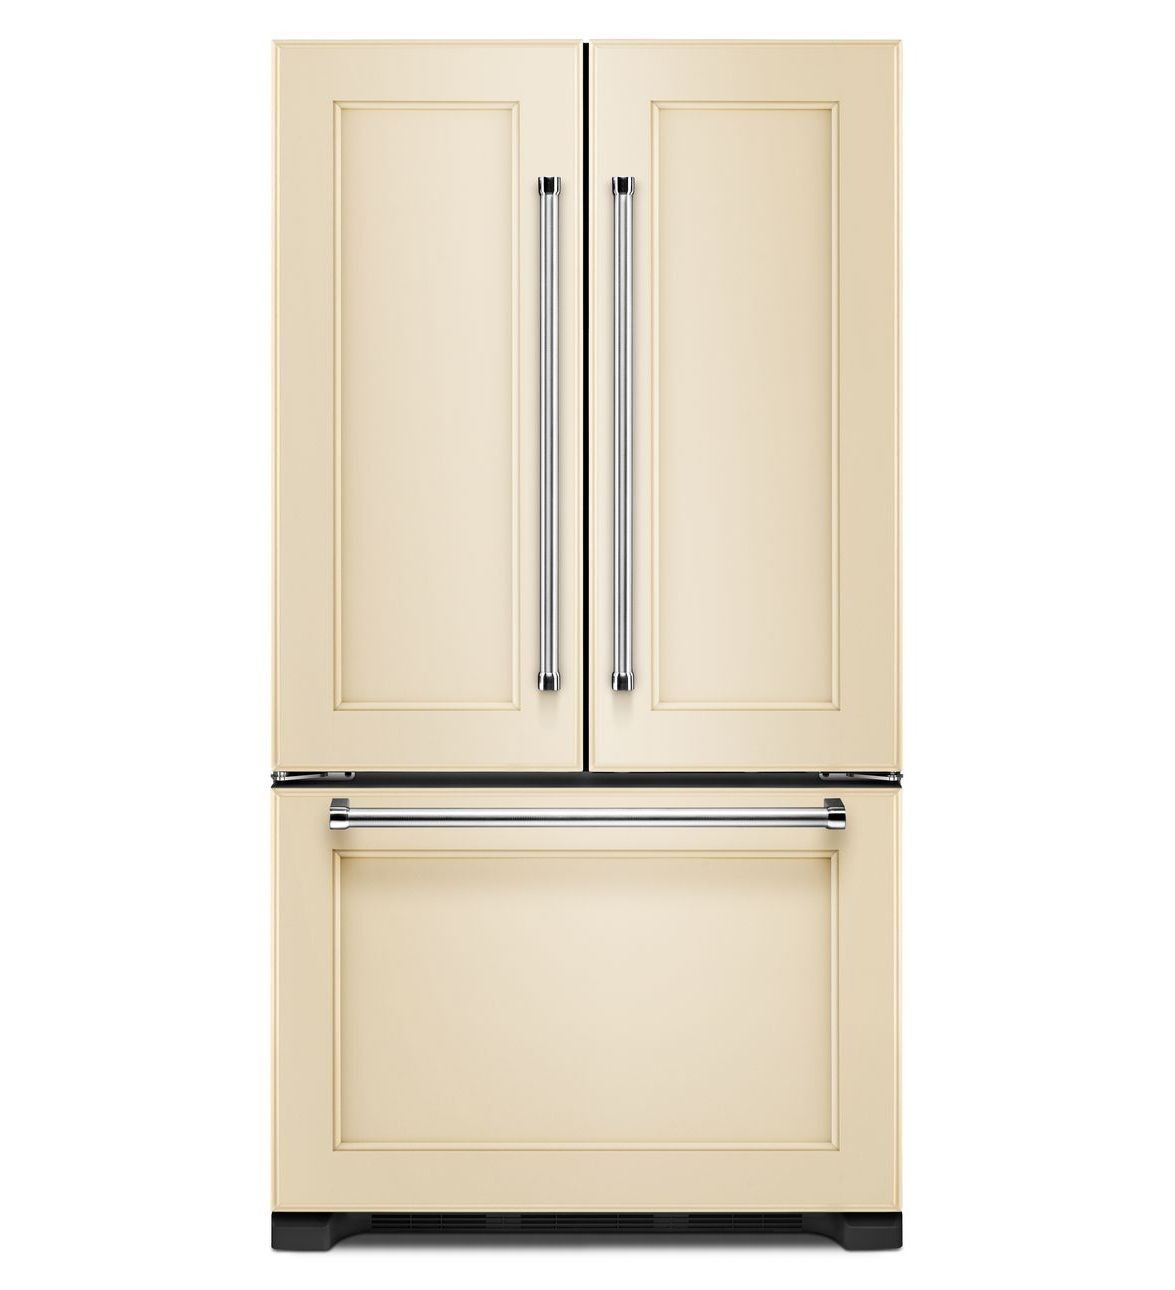 Kitchen and Couch - Buy Refrigerators from #Whirlpool and ...